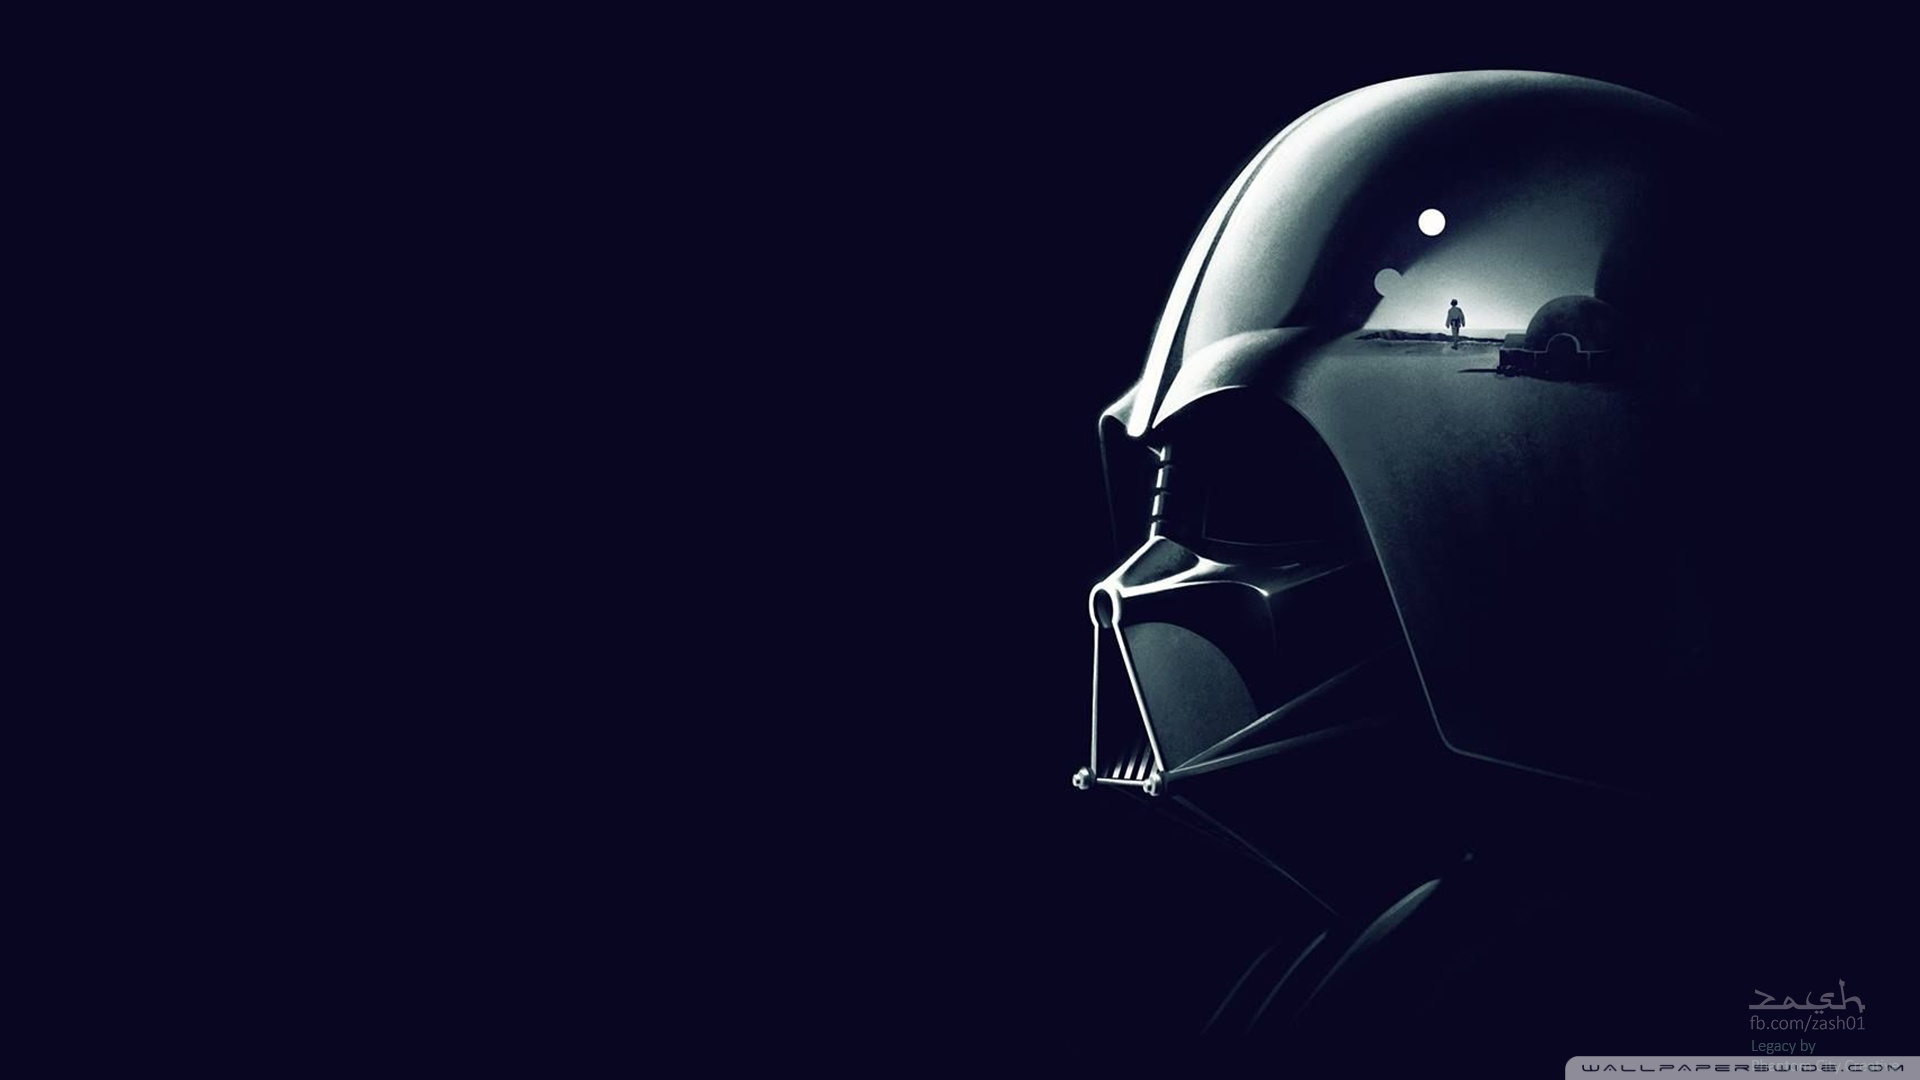 Star Wars HD desktop wallpaper. ««